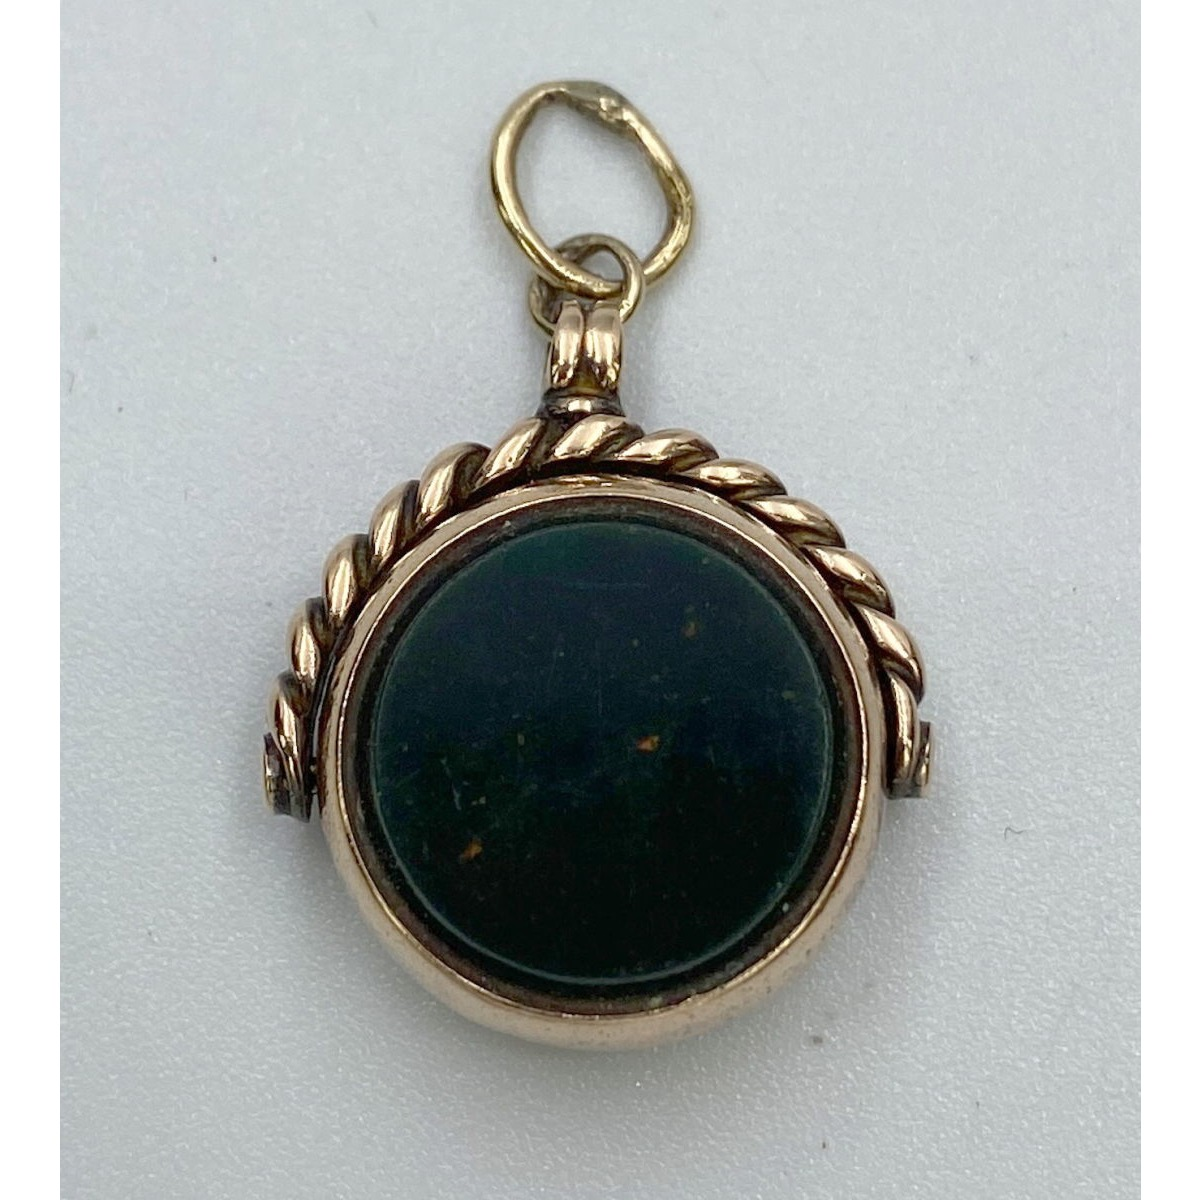 Small Antique English Gold Fob - Perfect for Grouping